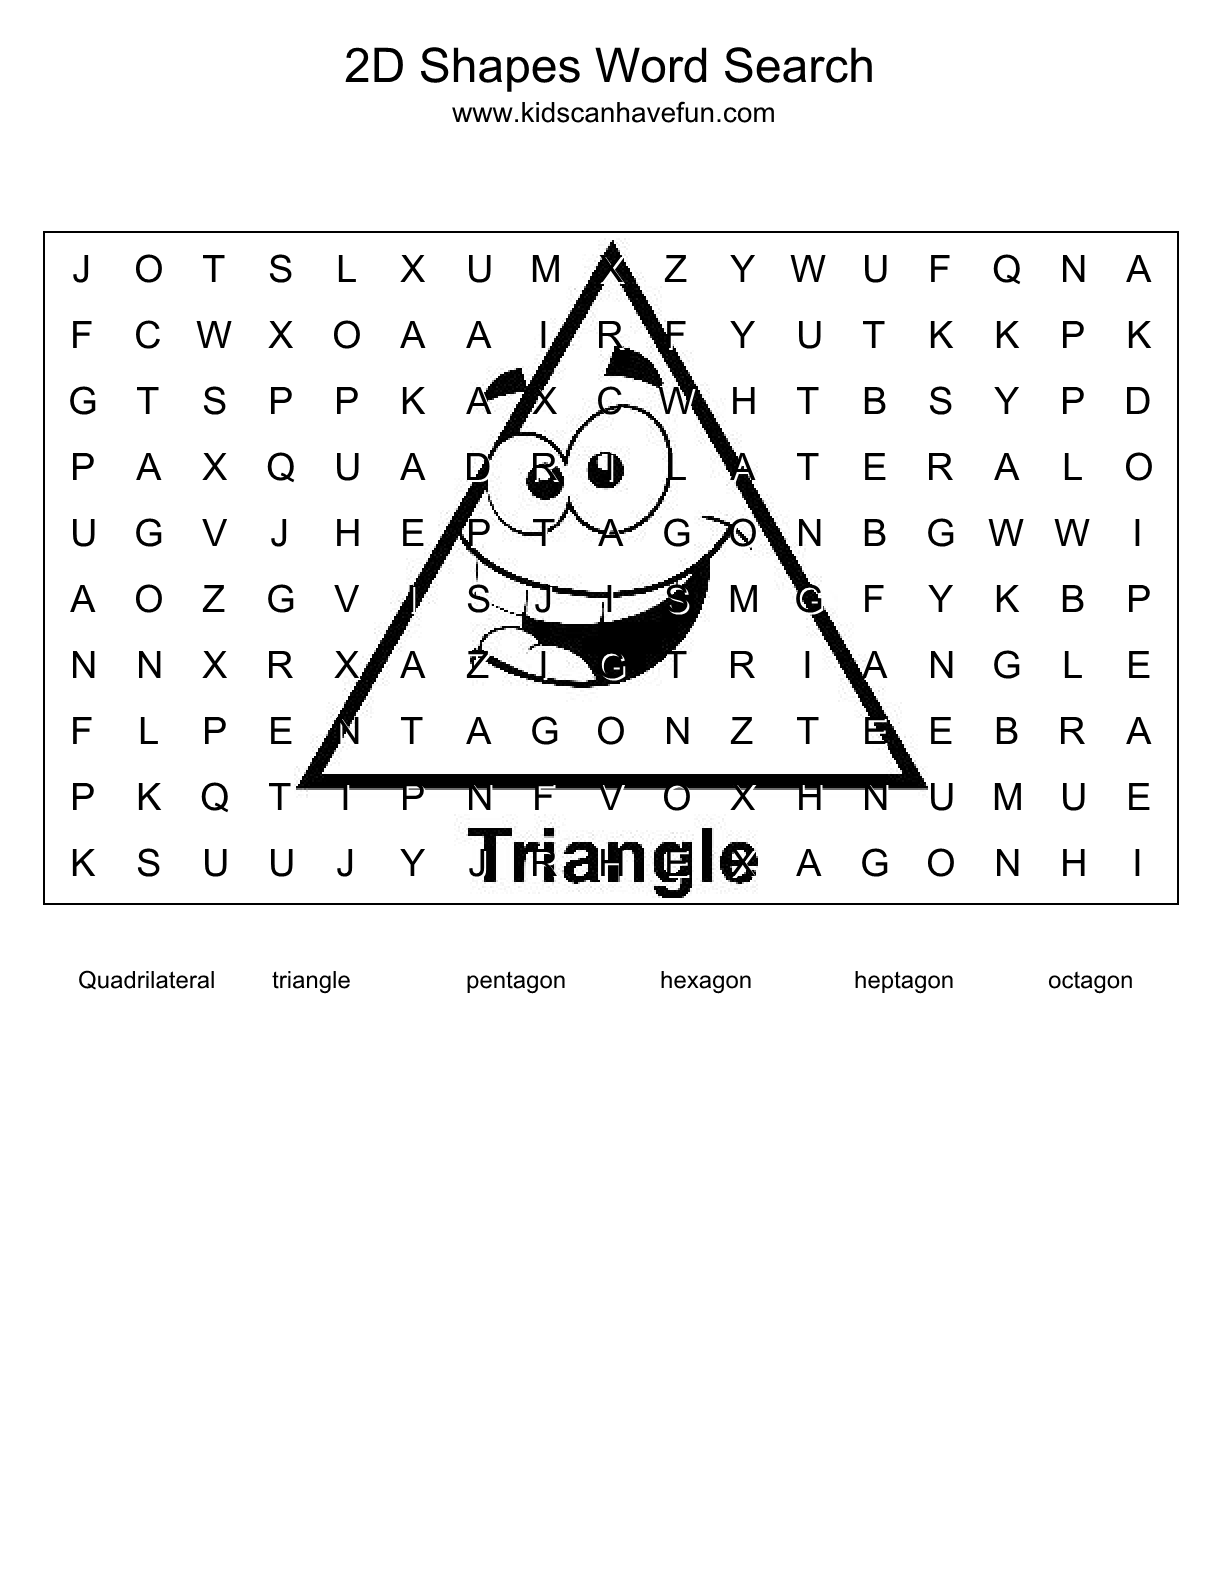 Game with shapes of different colors crossword - 2d Shapes Word Search Puzzle Http Www Kidscanhavefun Com Word